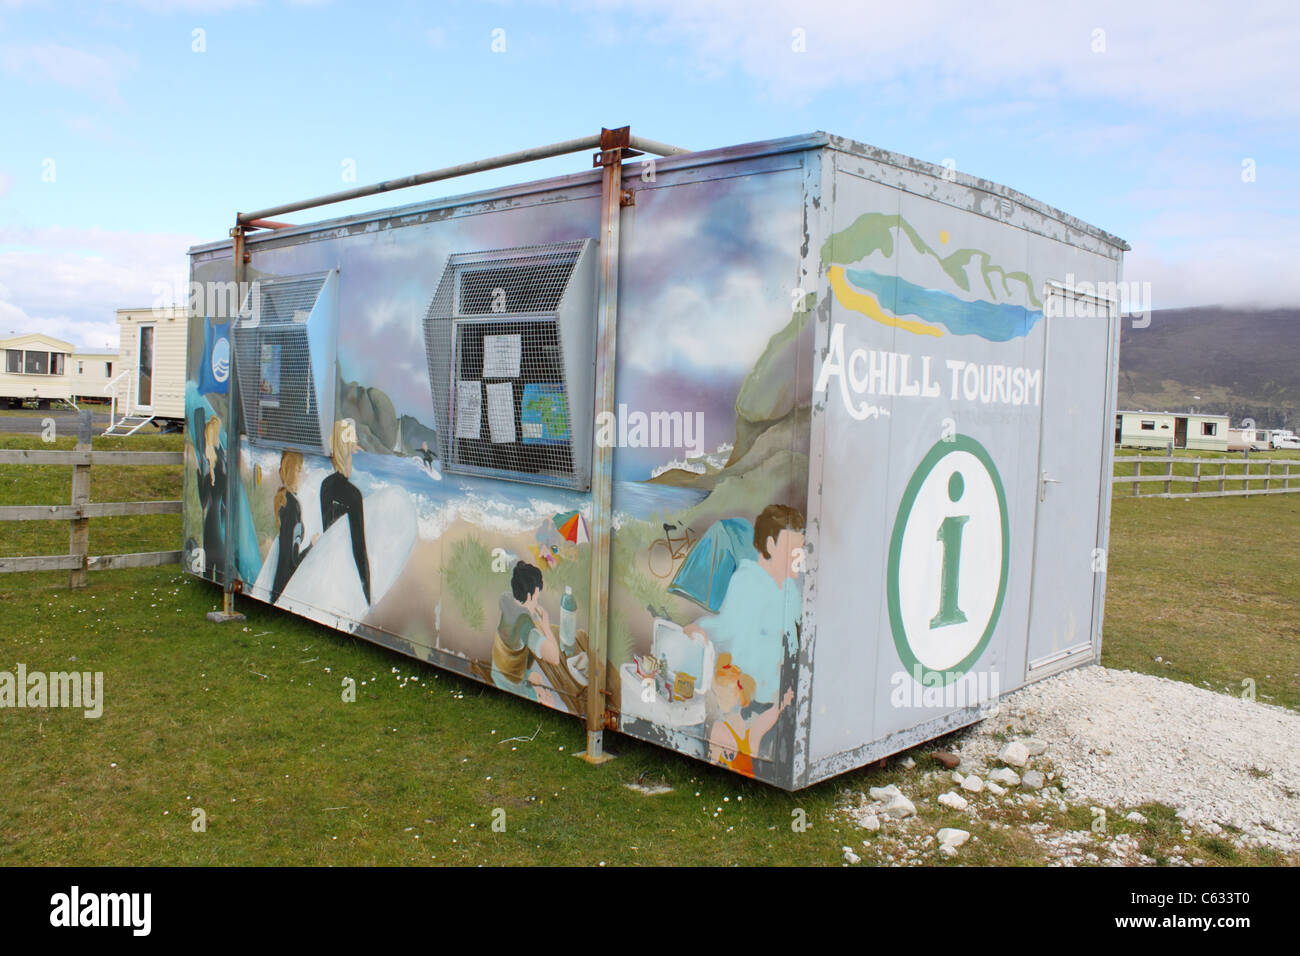 The Achill tourism office at Keel, Achill Island, Ireland - Stock Image